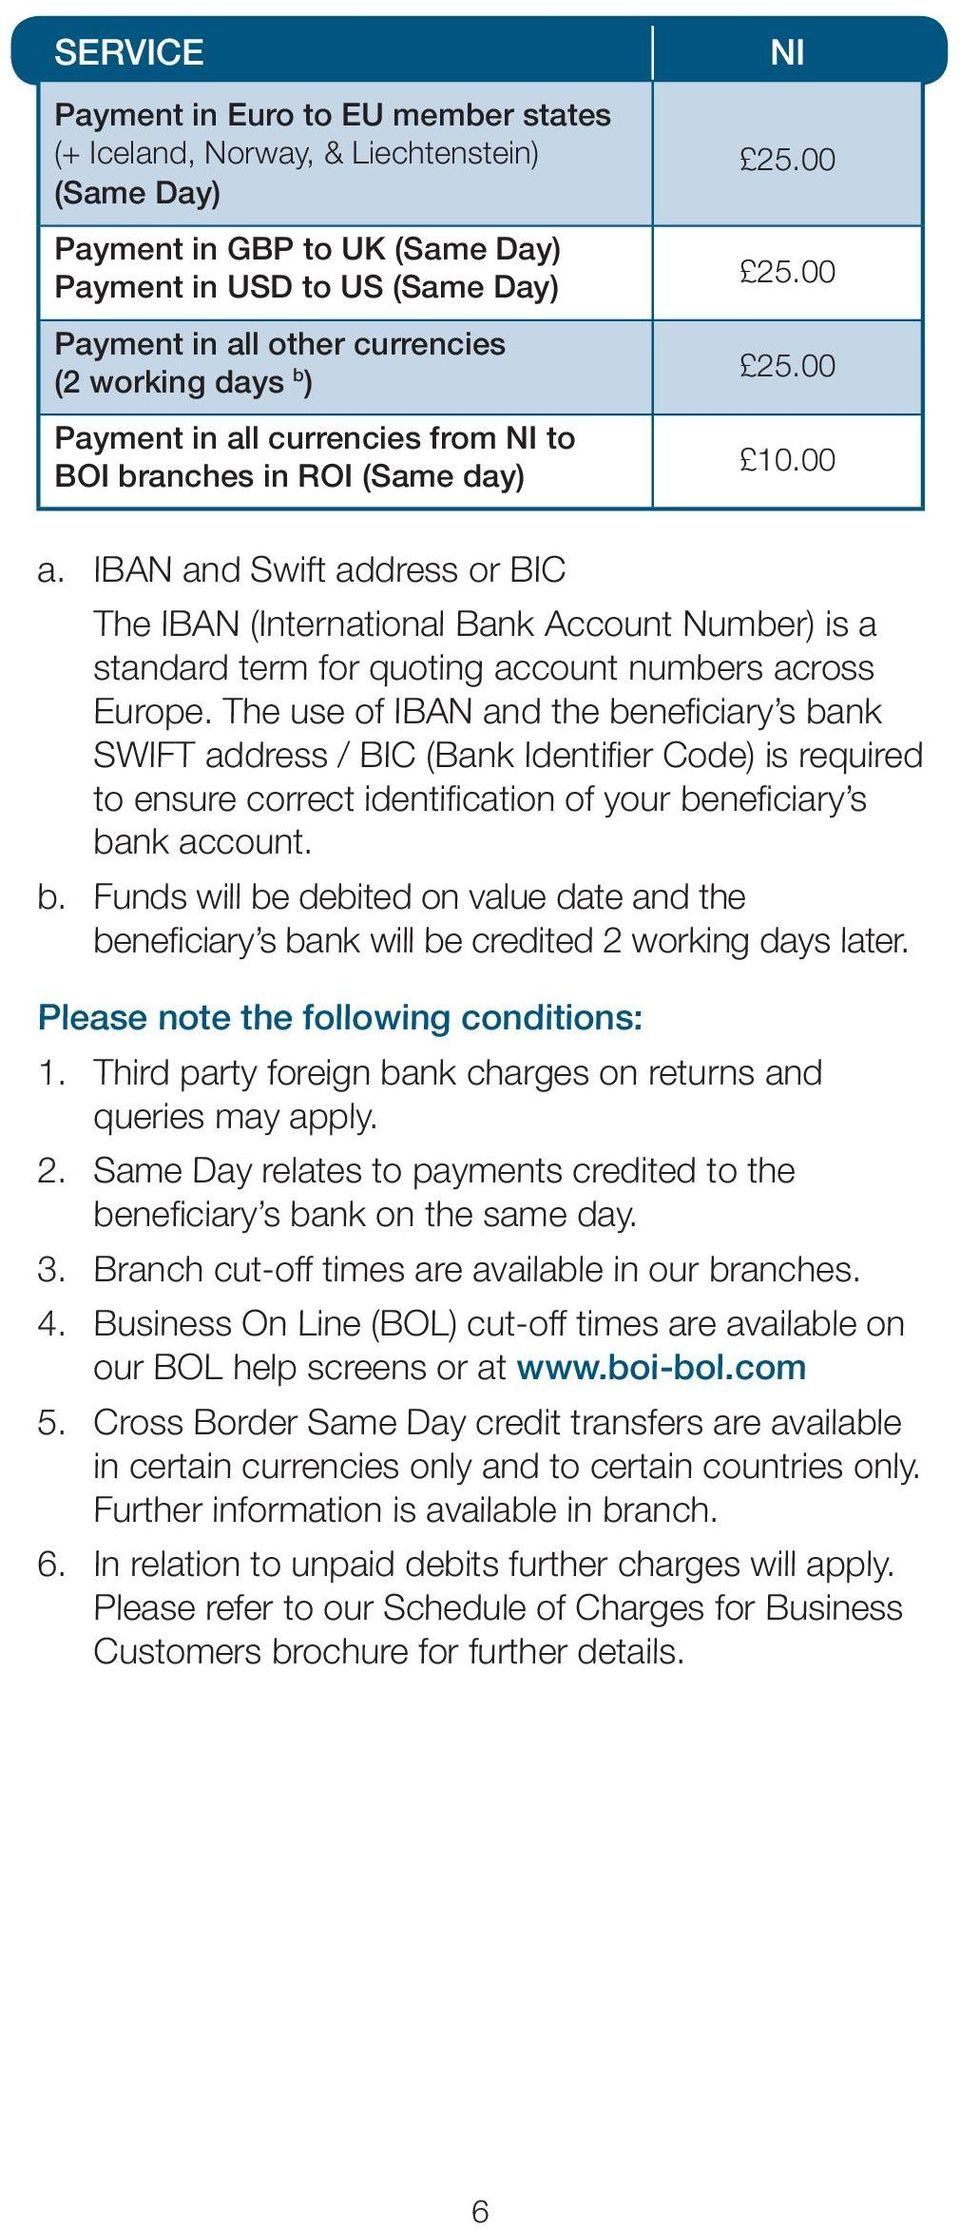 IBAN and Swift address or BIC The IBAN (International Bank Account Number) is a standard term for quoting account numbers across Europe.